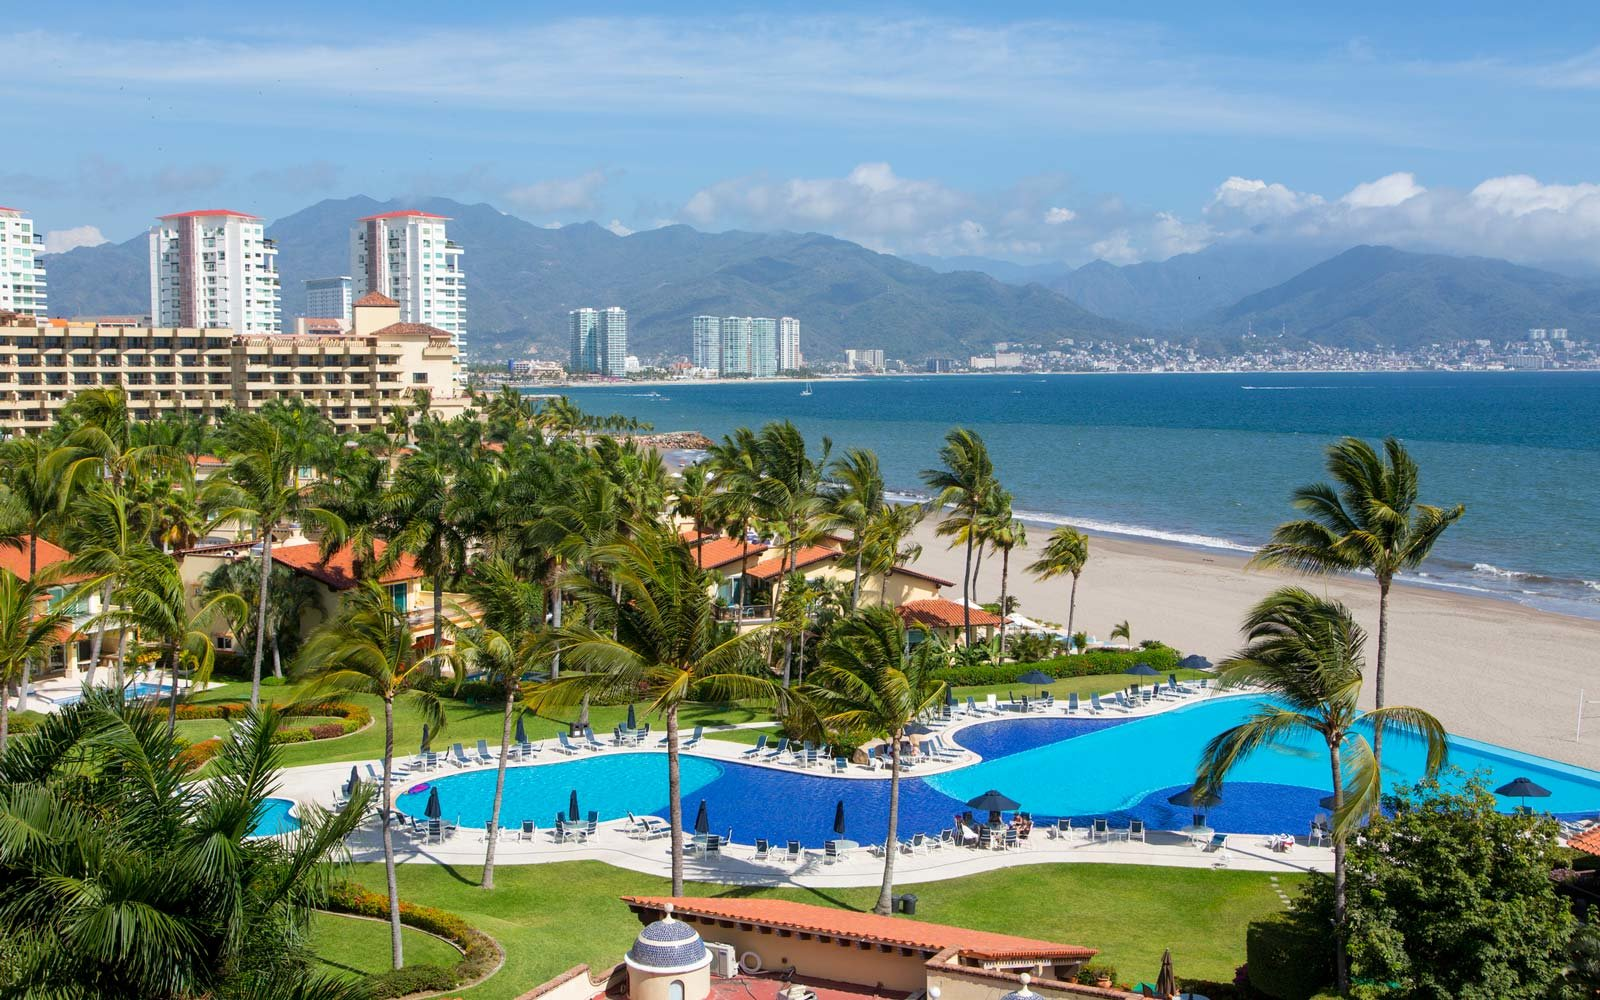 Amazing puerto vallarta all inclusive resorts travel for Alaska airlines vacations all inclusive